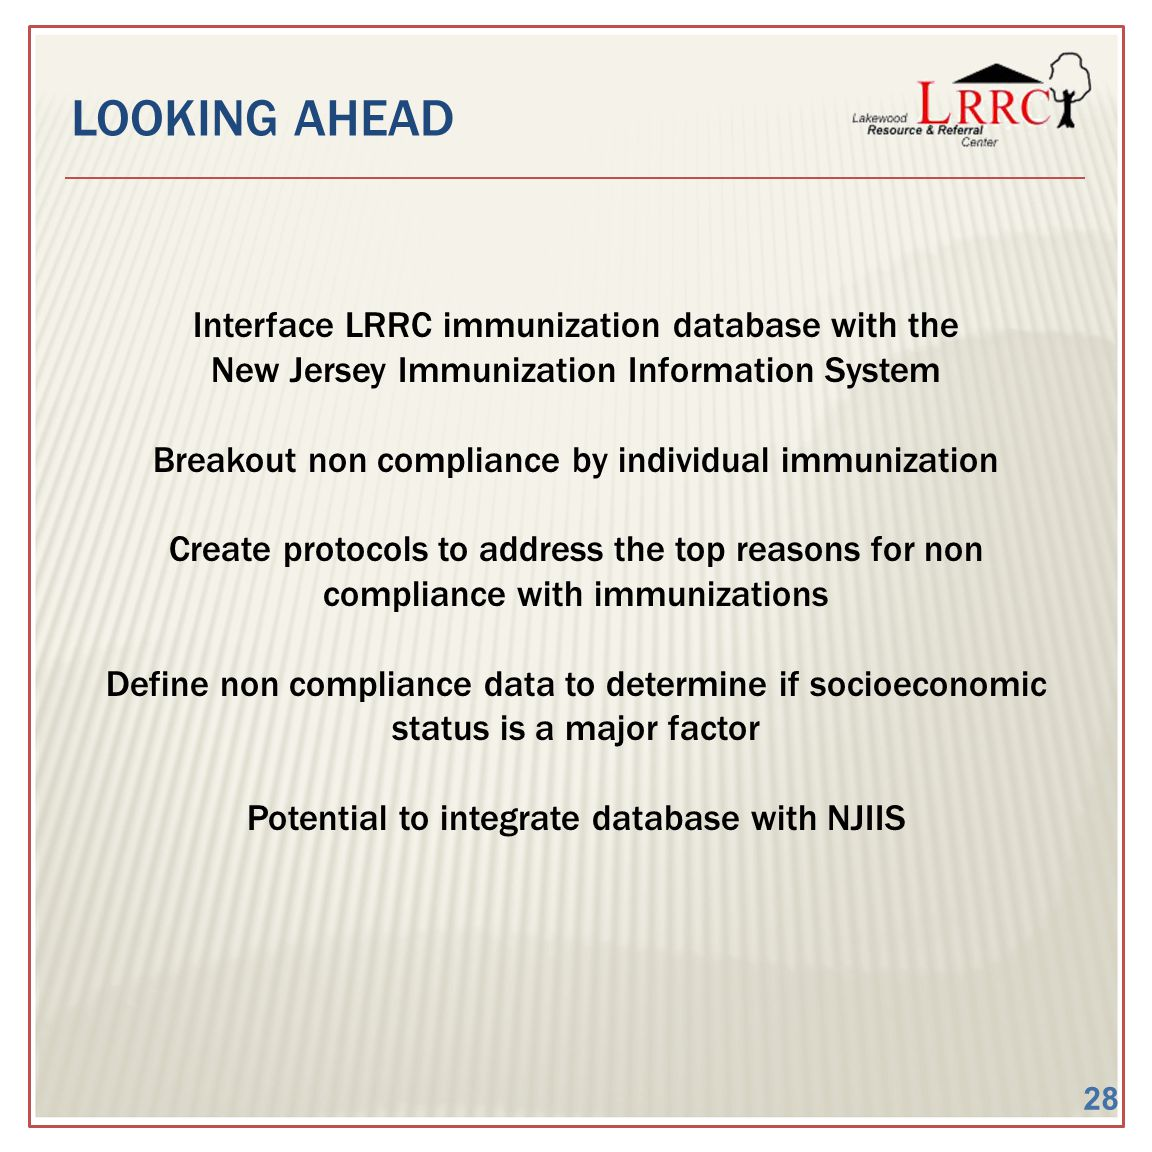 LOOKING AHEAD Interface LRRC immunization database with the New Jersey Immunization Information System Breakout non compliance by individual immunization Create protocols to address the top reasons for non compliance with immunizations Define non compliance data to determine if socioeconomic status is a major factor Potential to integrate database with NJIIS 28